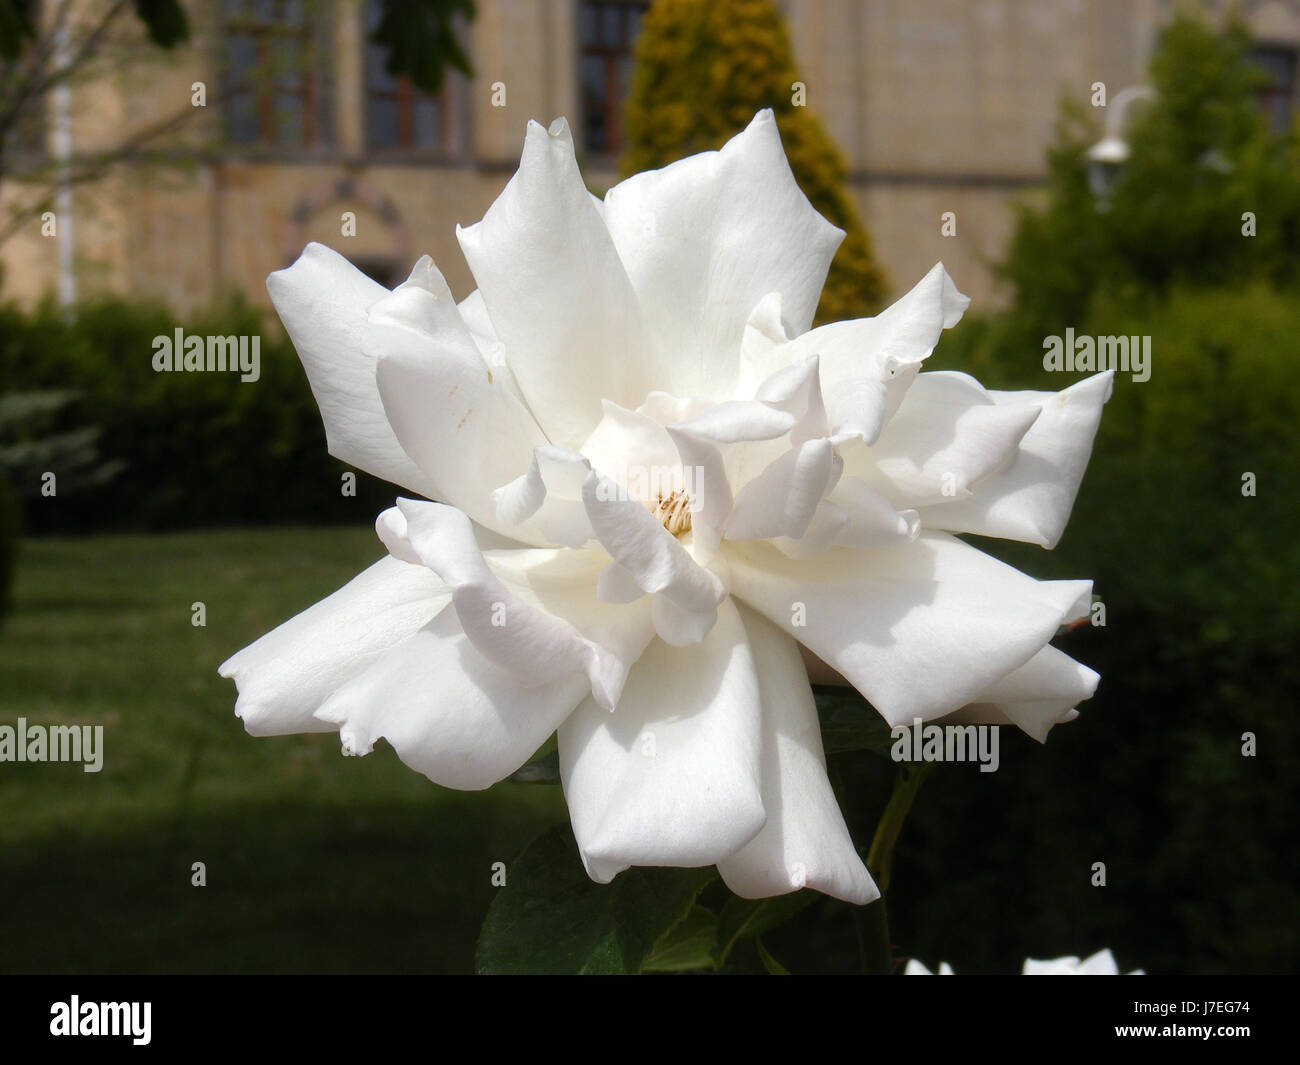 Pictures Of White Rose Flowers Pictures Of The Most Beautiful White